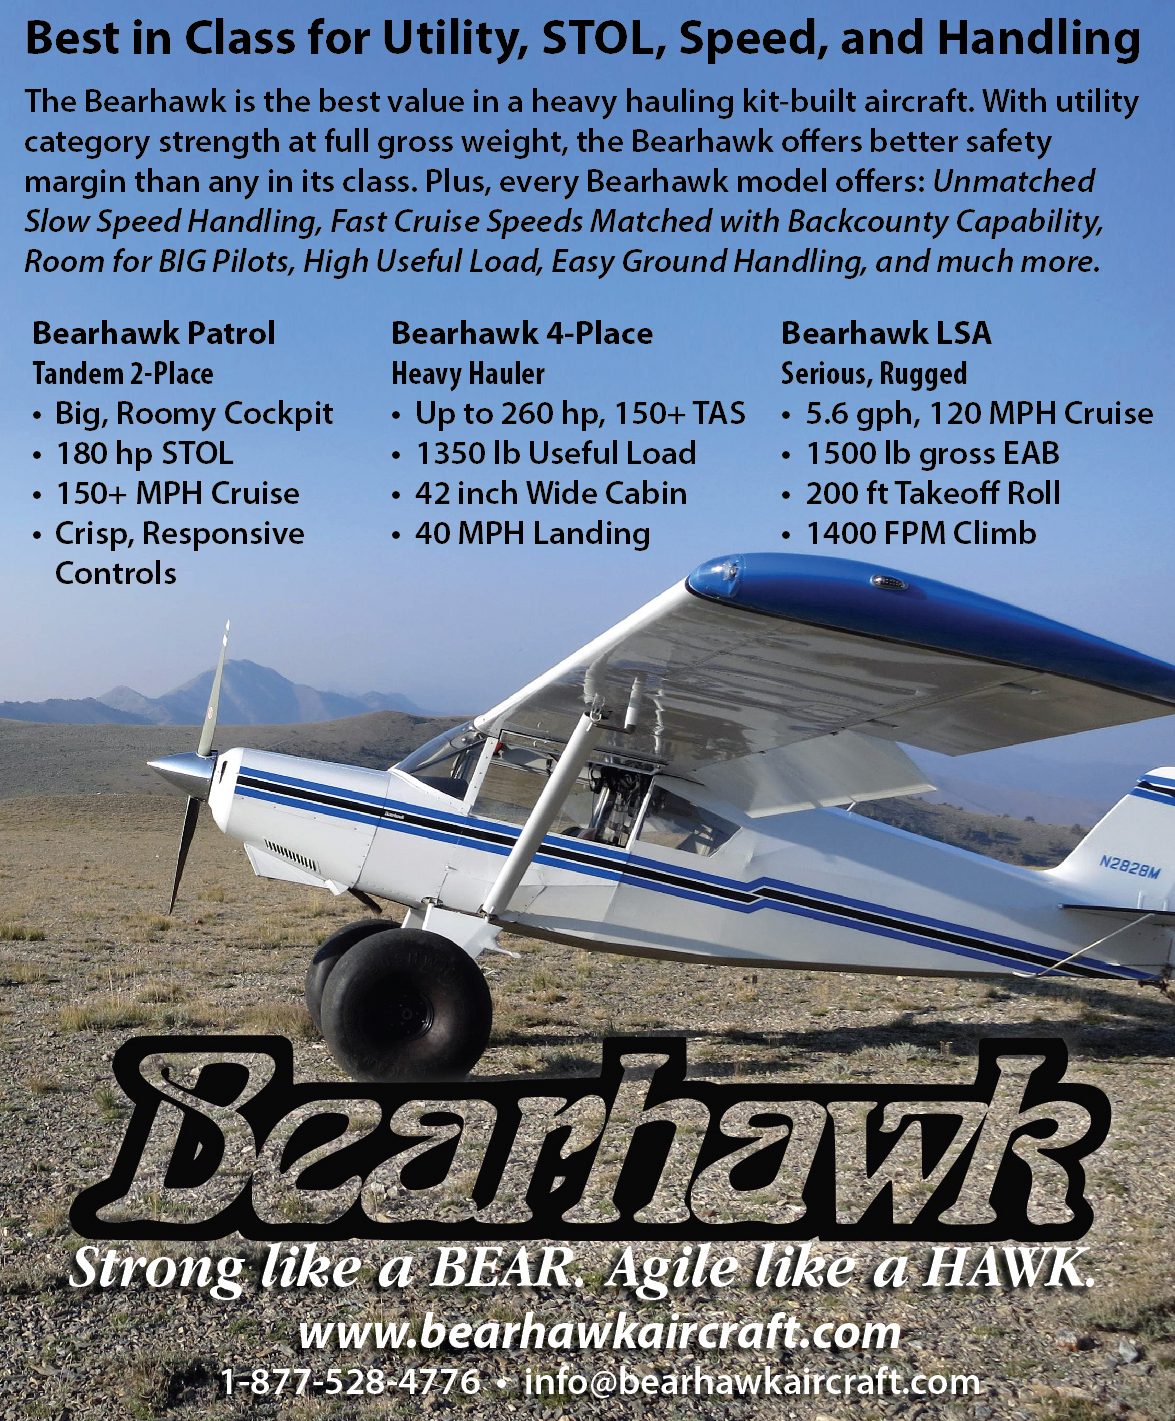 Bearhawk Print Ad – Sport Aviation Magazine 2018 – Connect